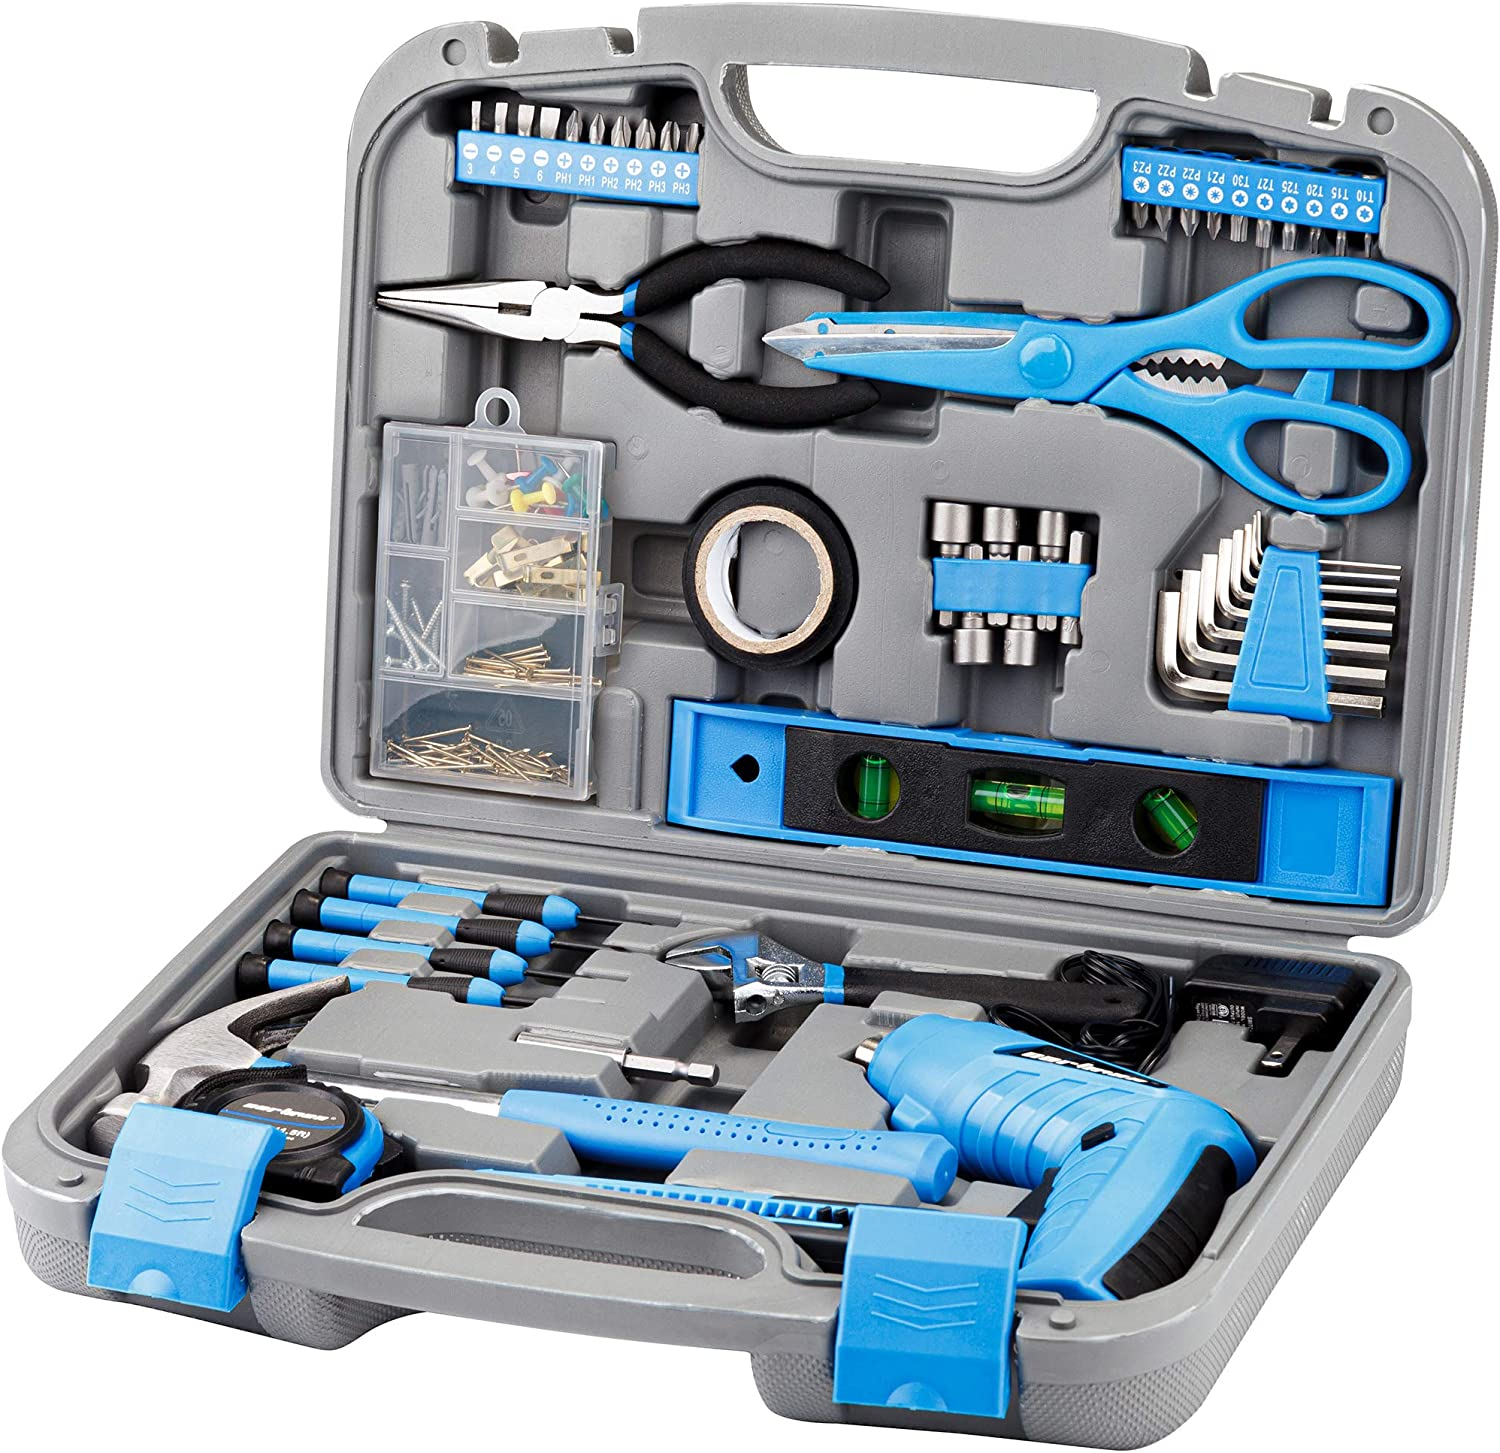 Cartman Blue 149-Piece Tool Set - General Household Hand Tool Kit with Plastic Toolbox Storage Case